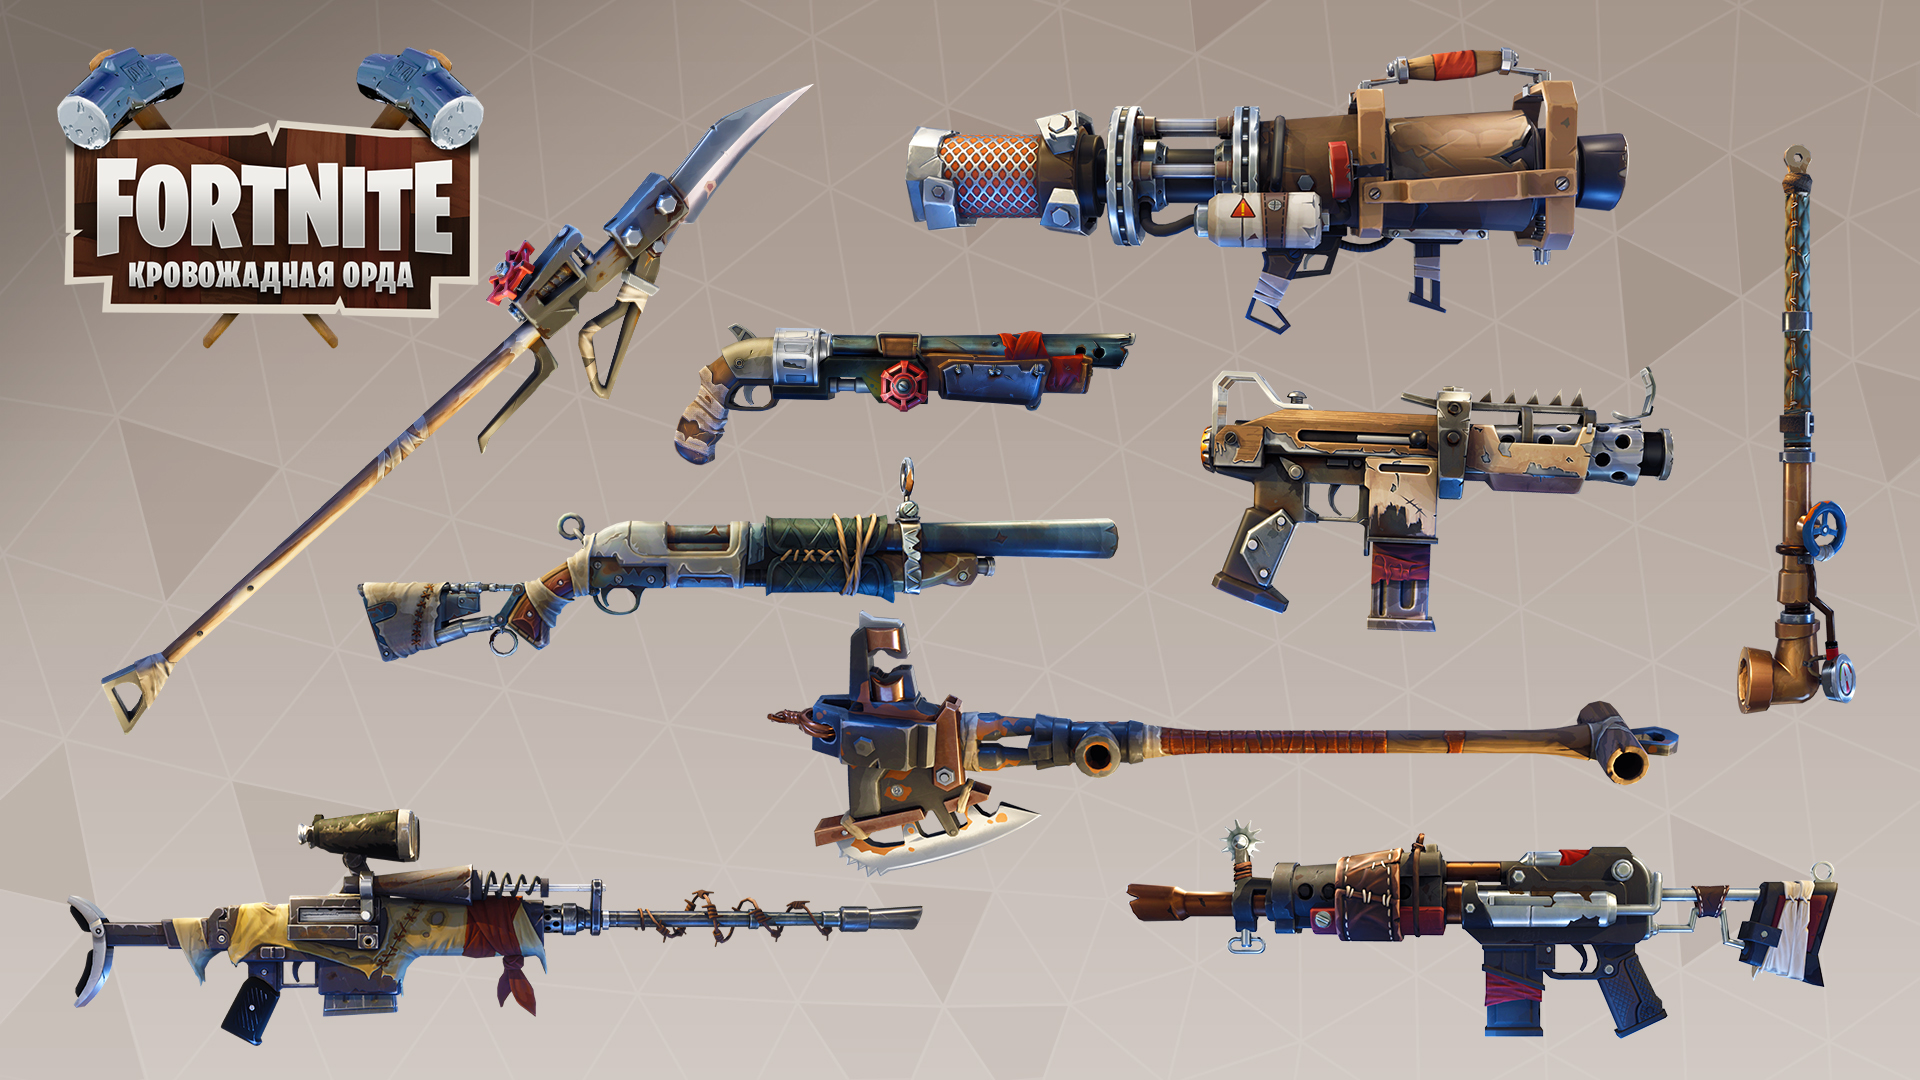 Fortnite%2Fblog%2Fea-1-7-patch-notes%2FRU-HB-Weapons-1920x1080-a8cb6b059ff4b4151e26664ec979e8cae317478b